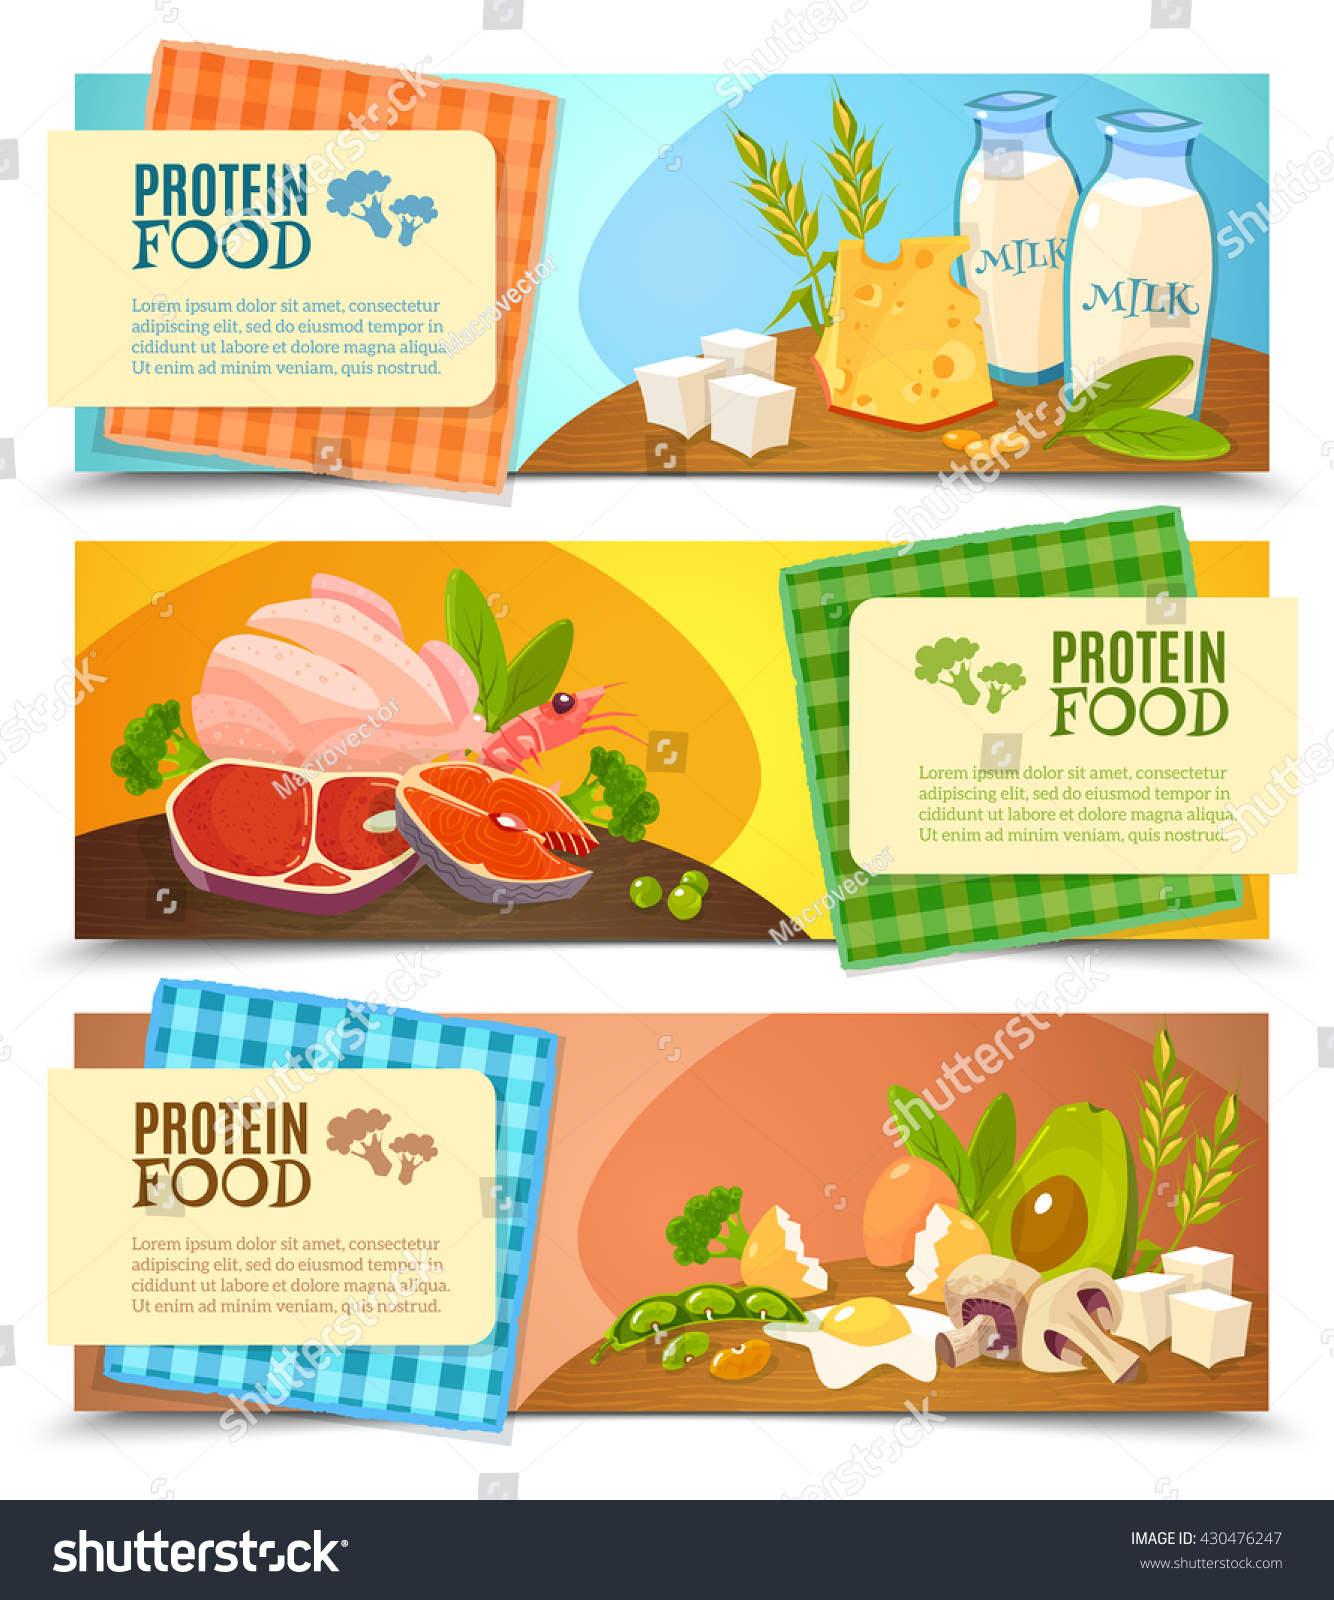 Healthy Diet 3 Horizontal Flat Banners Set With Information On High Protein Food Abstract Isolated Vector